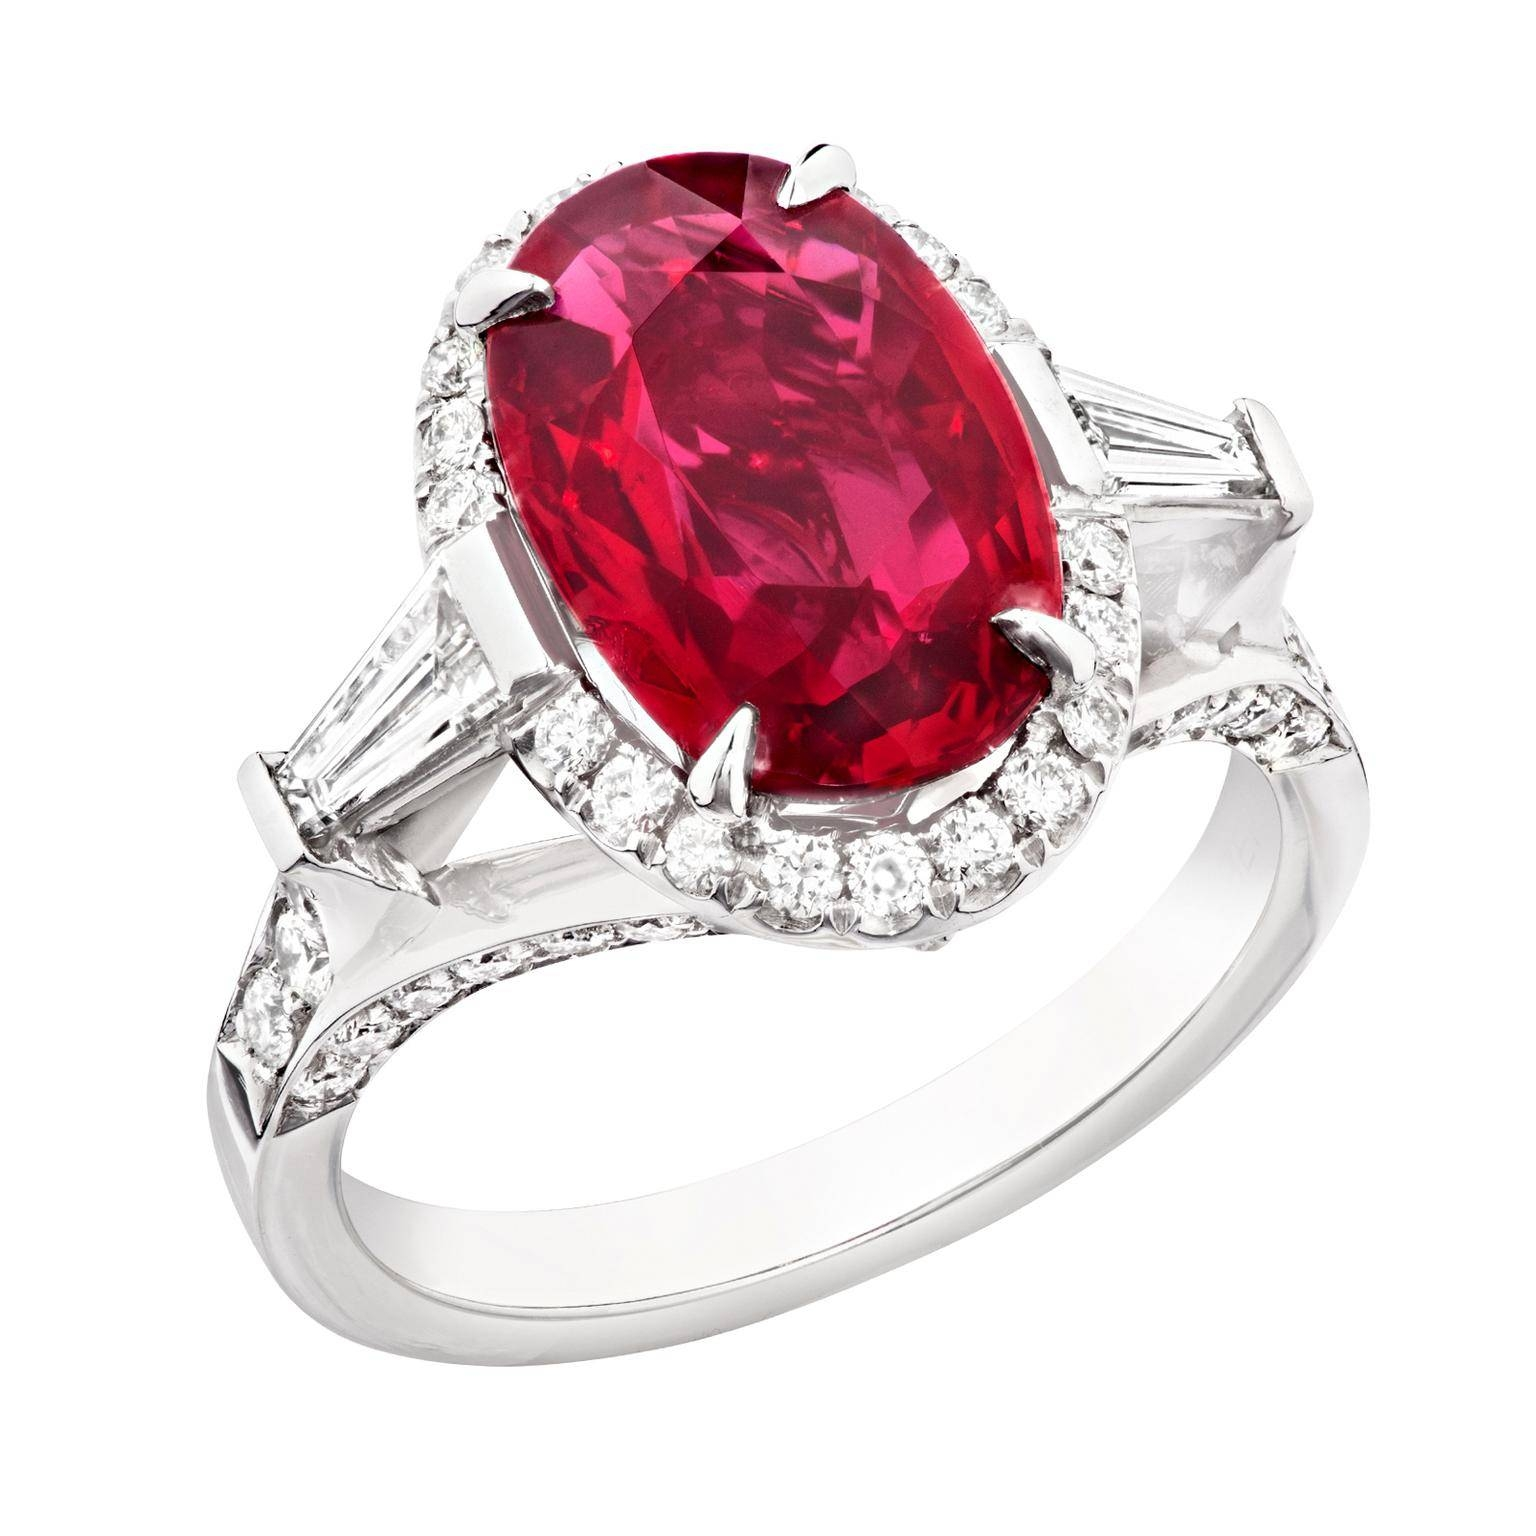 Oval Ruby Engagement Ring | Fabergé | The Jewellery Editor With Ruby Engagement Rings (View 5 of 15)